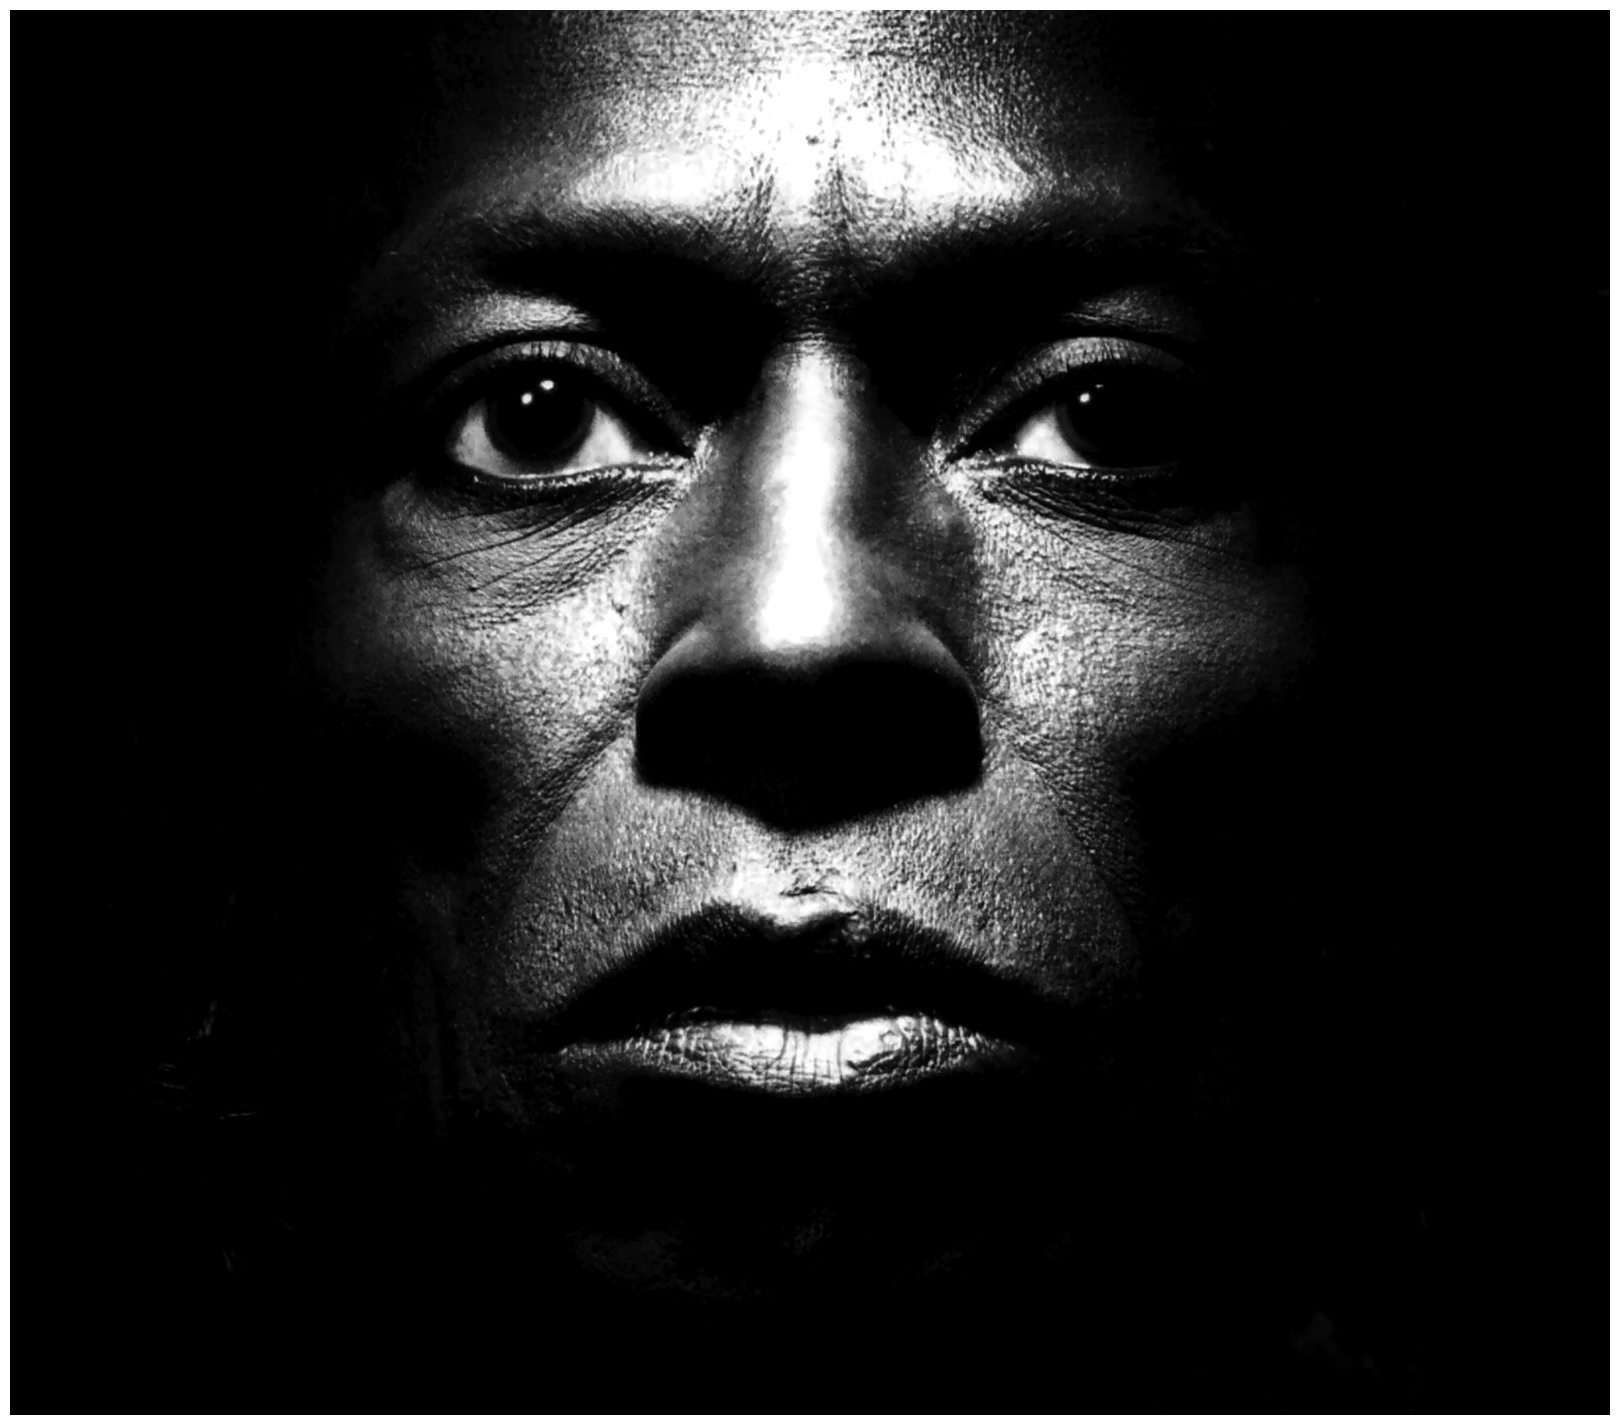 Miles Davis © Irving Penn Foundation